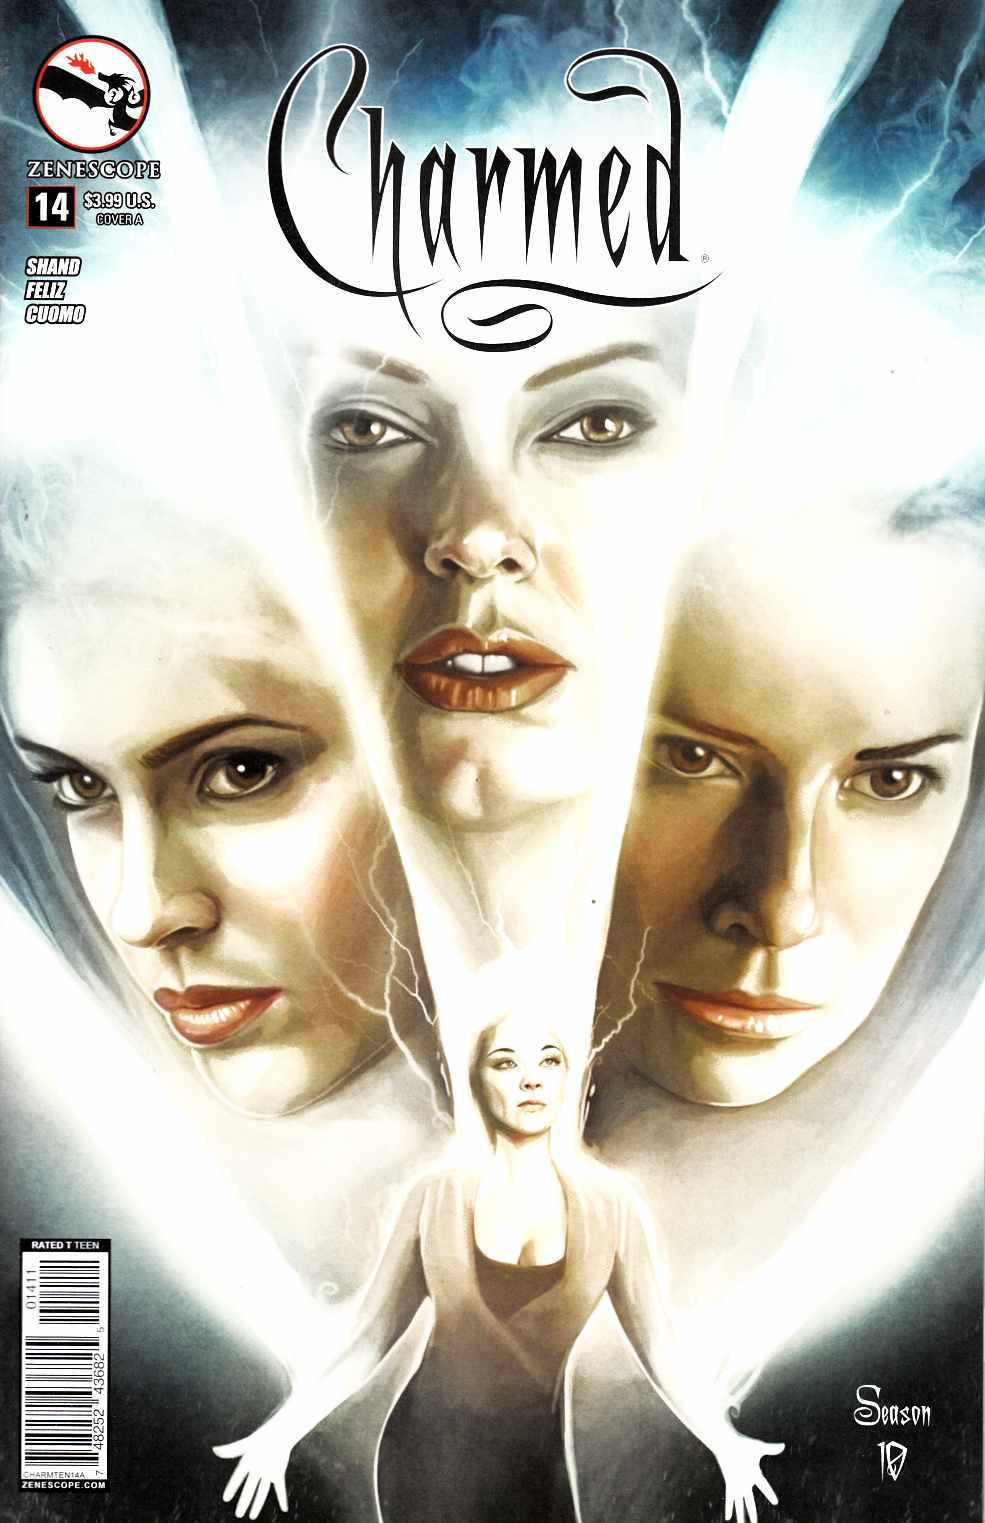 Charmed Season 10 #14 Cover A- Seidman [Zenescope Comic] THUMBNAIL